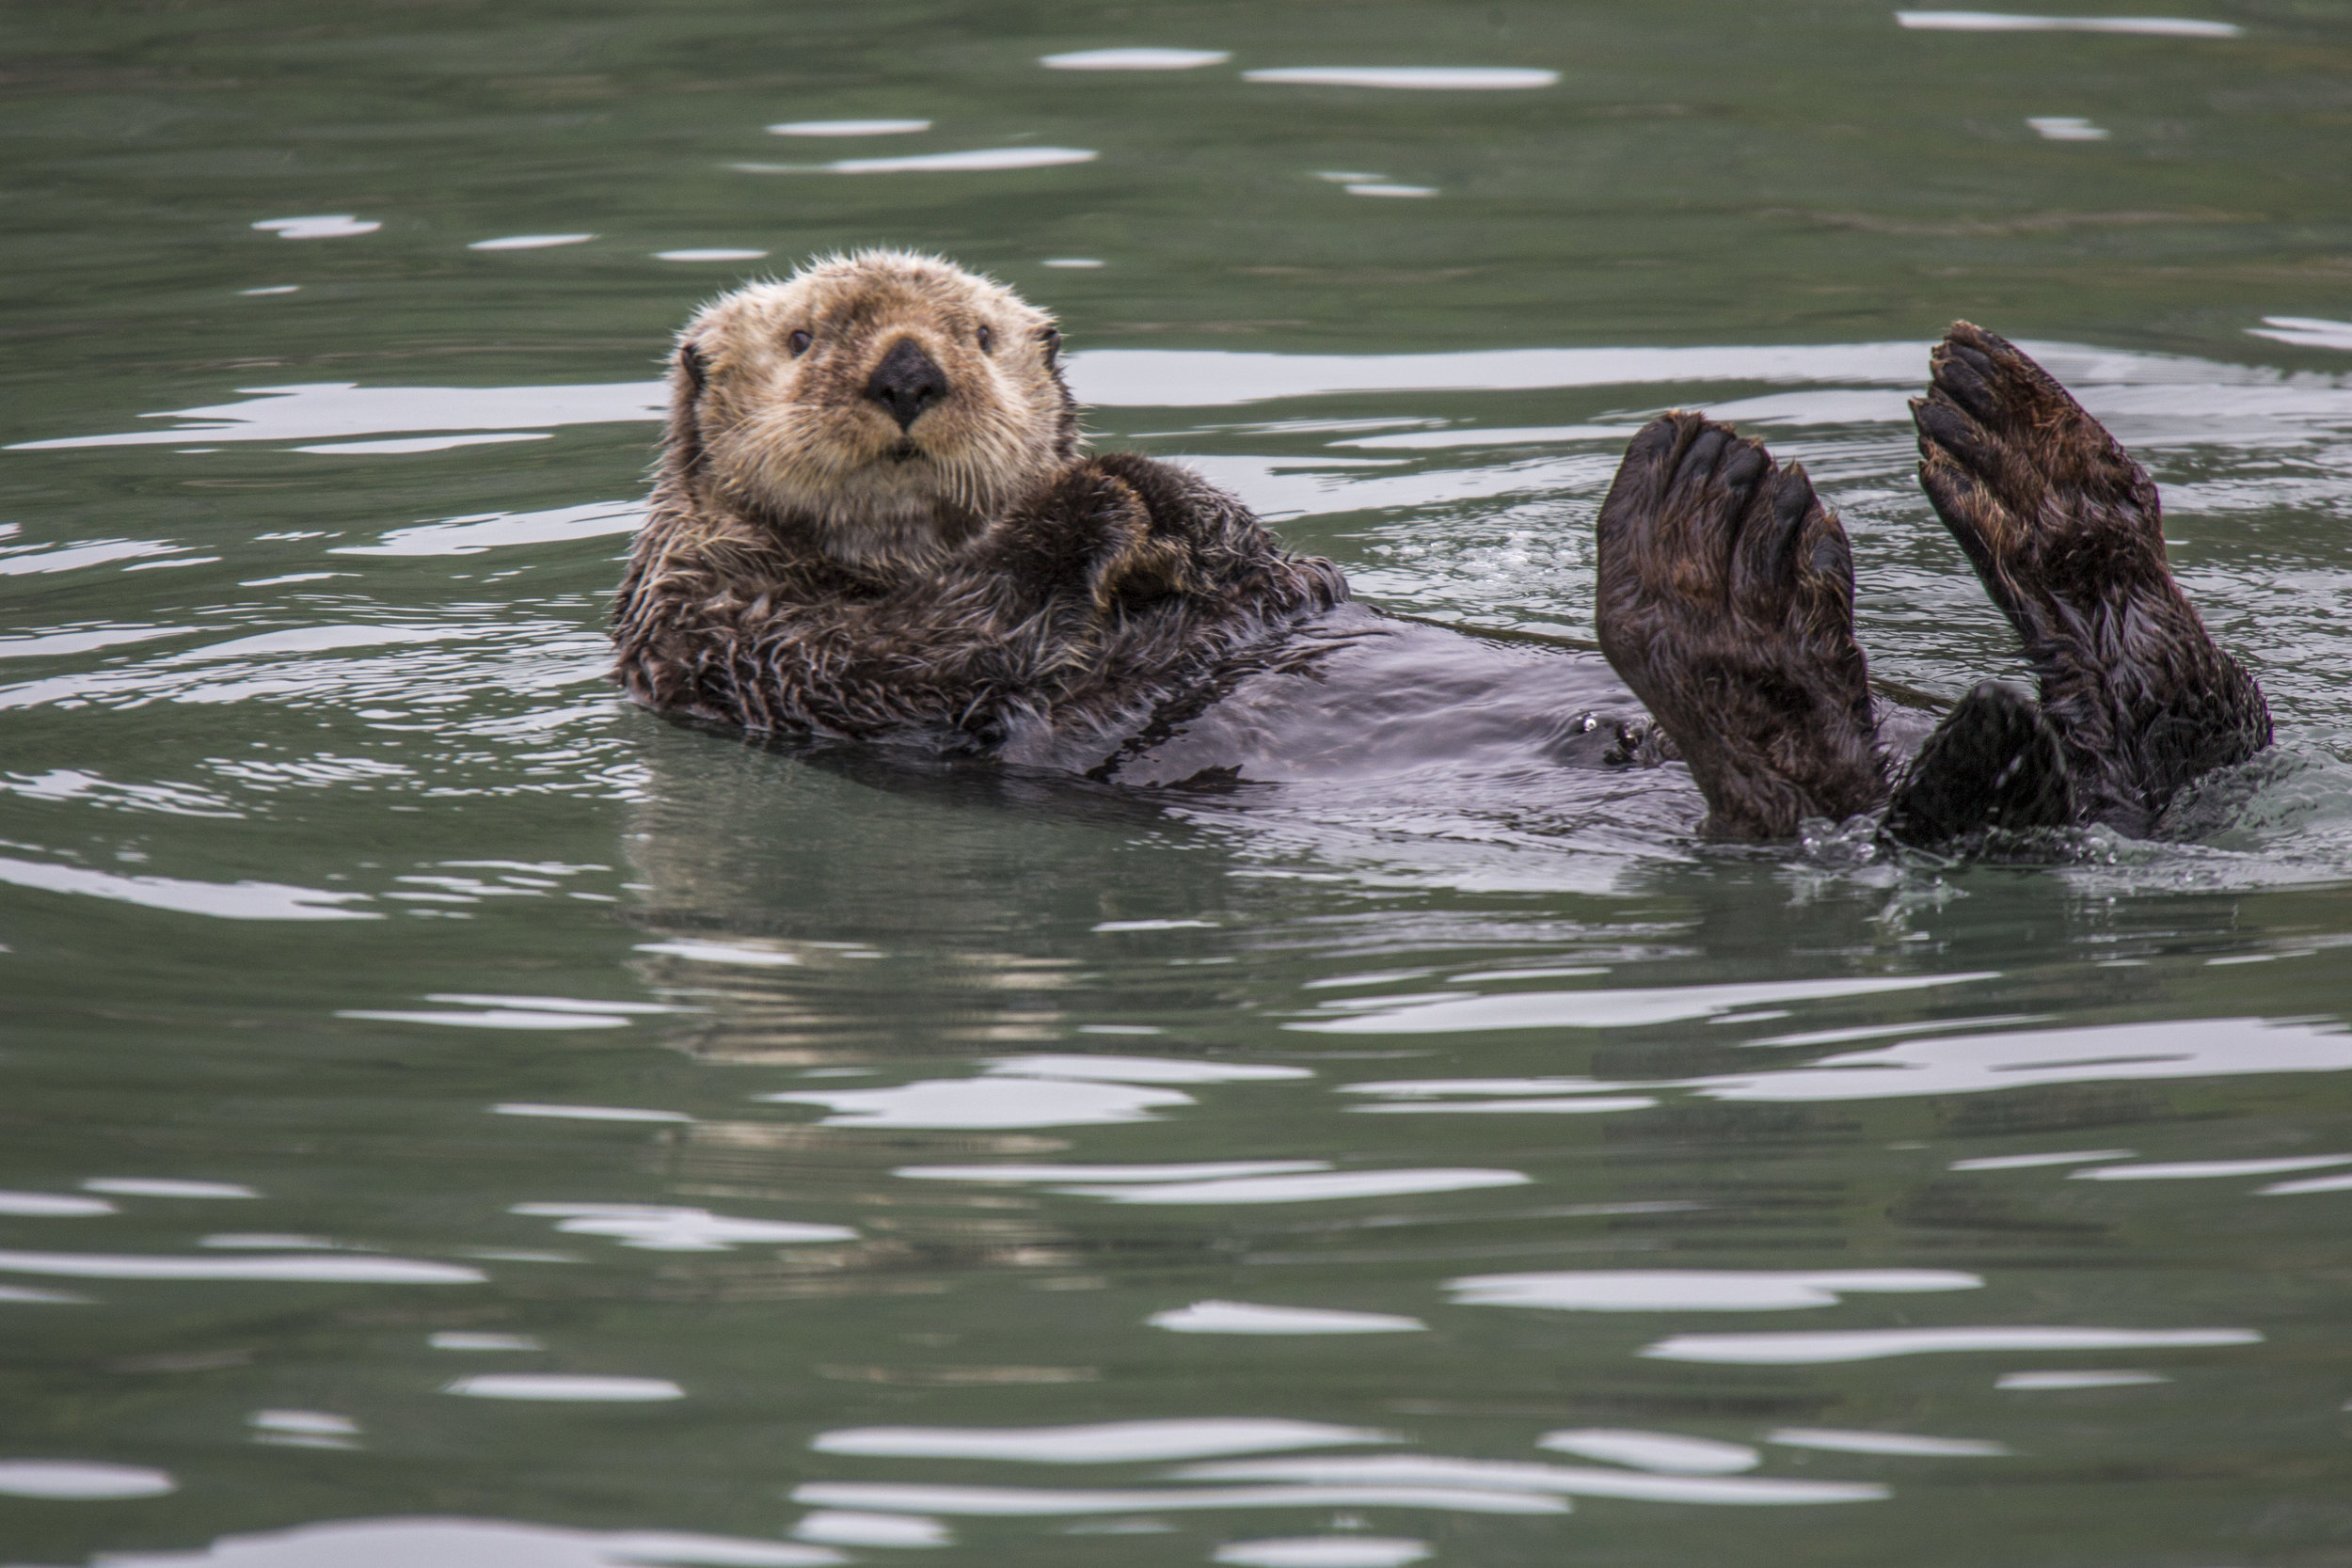 Sea Otter Is Just Floating About His Day